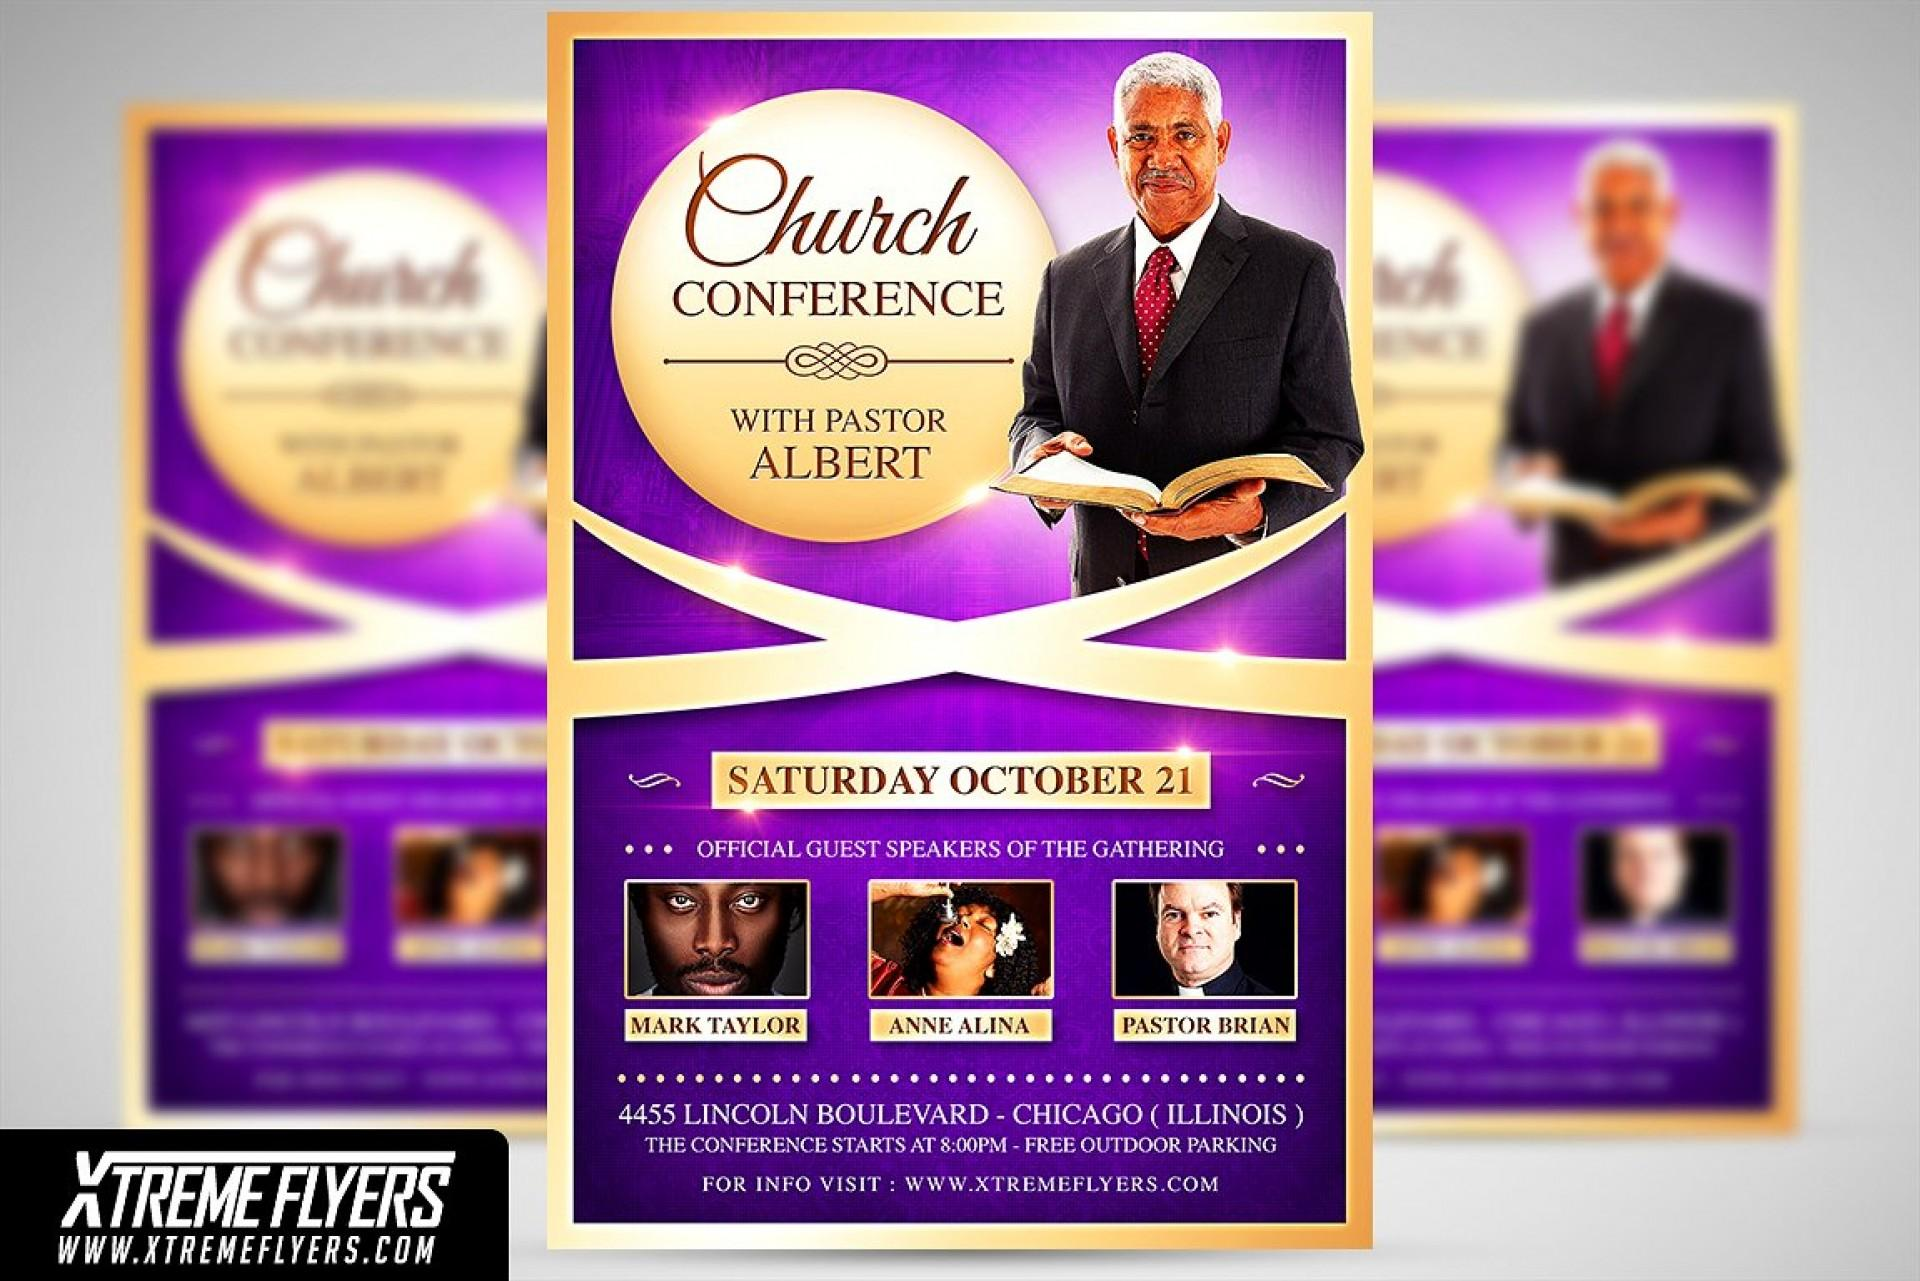 Church Conference Flyer Template Free